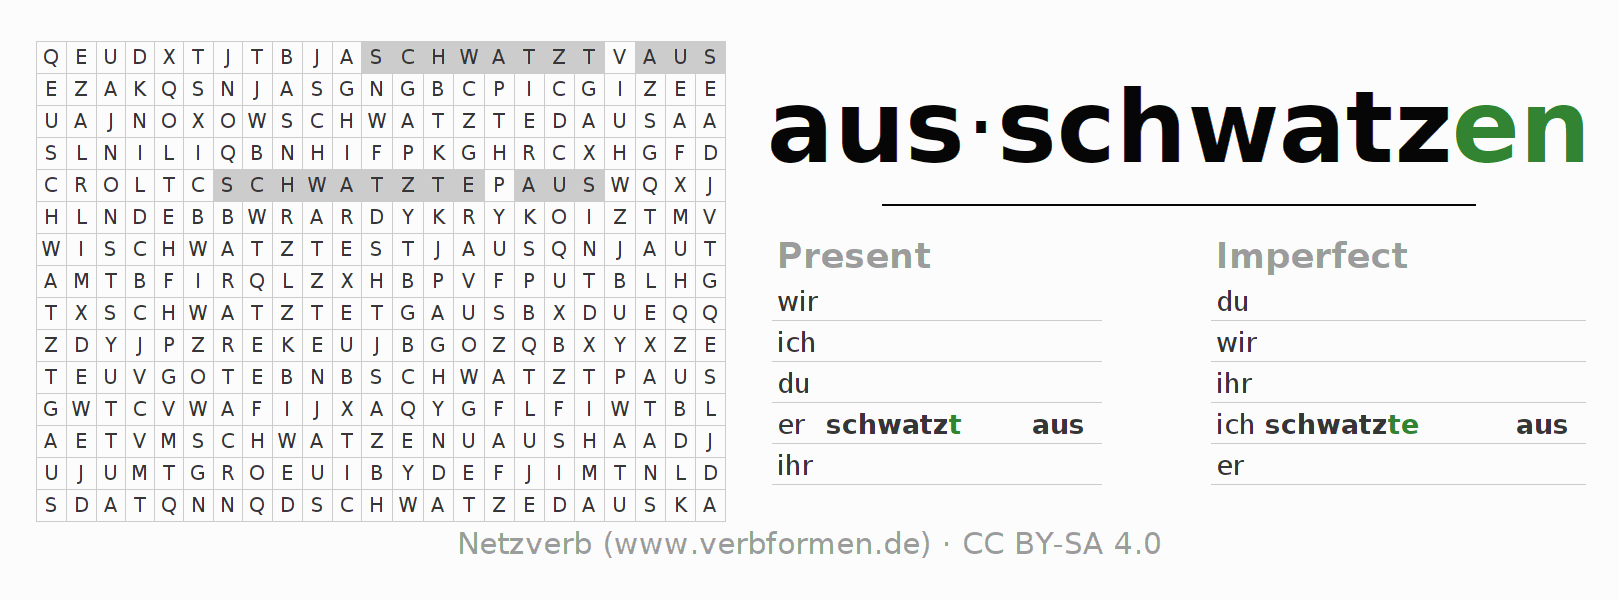 Word search puzzle for the conjugation of the verb ausschwatzen